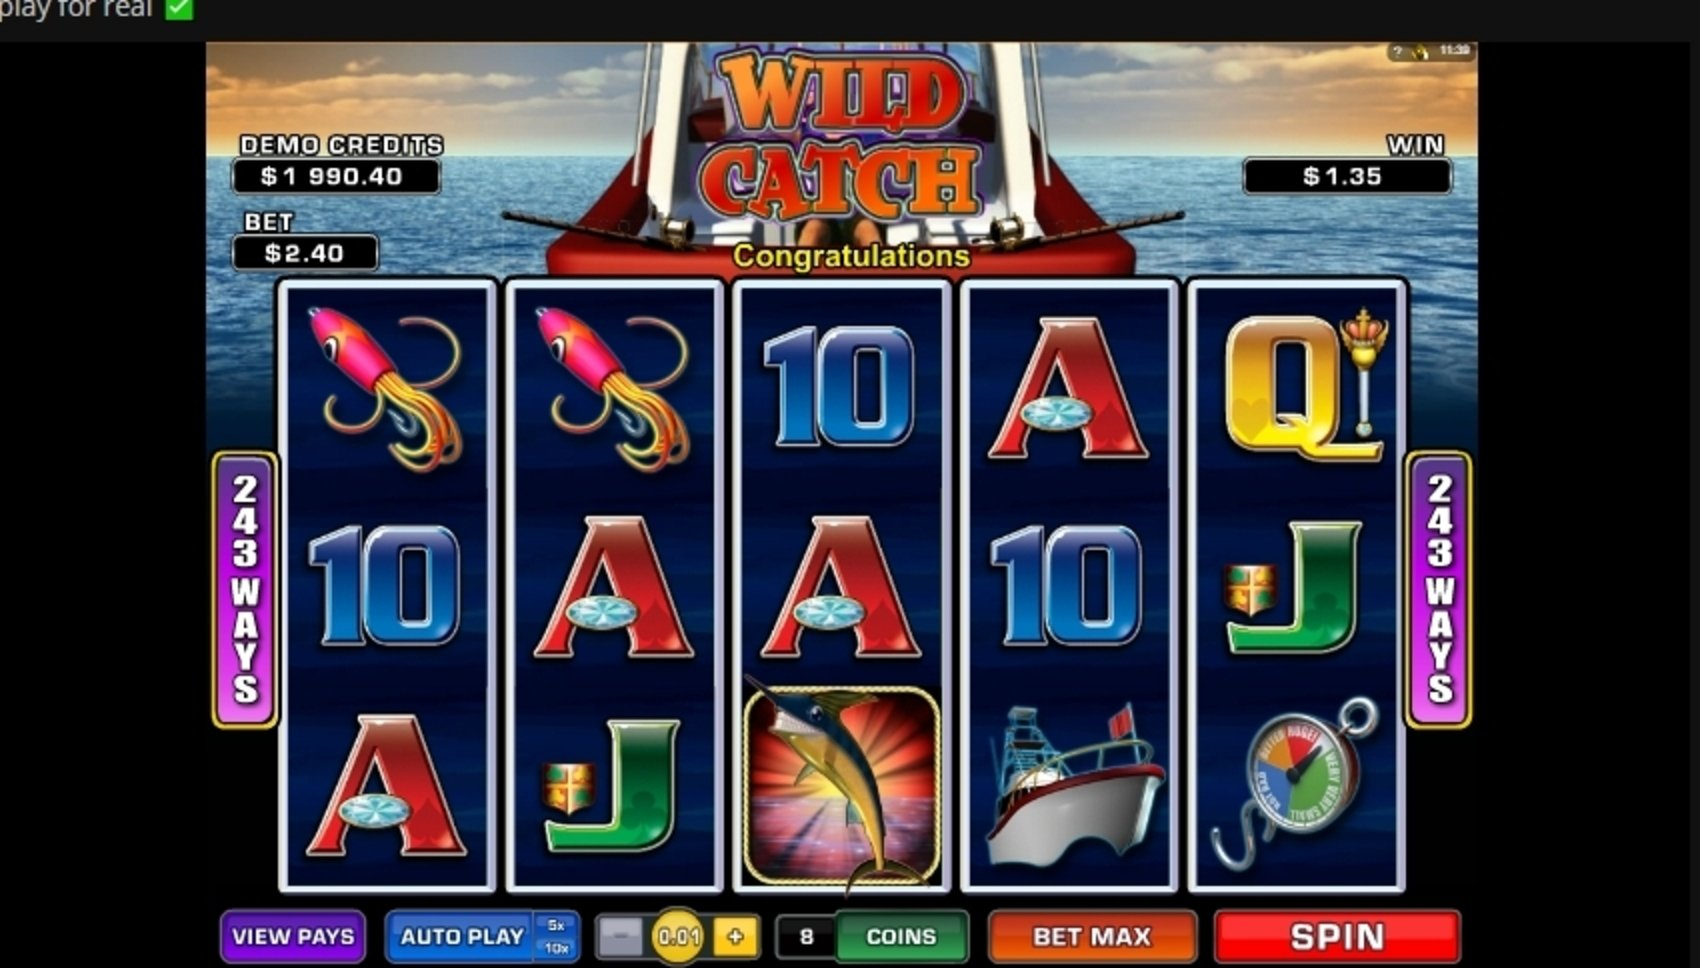 Win Money in Wild Catch (Microgaming) Free Slot Game by Microgaming